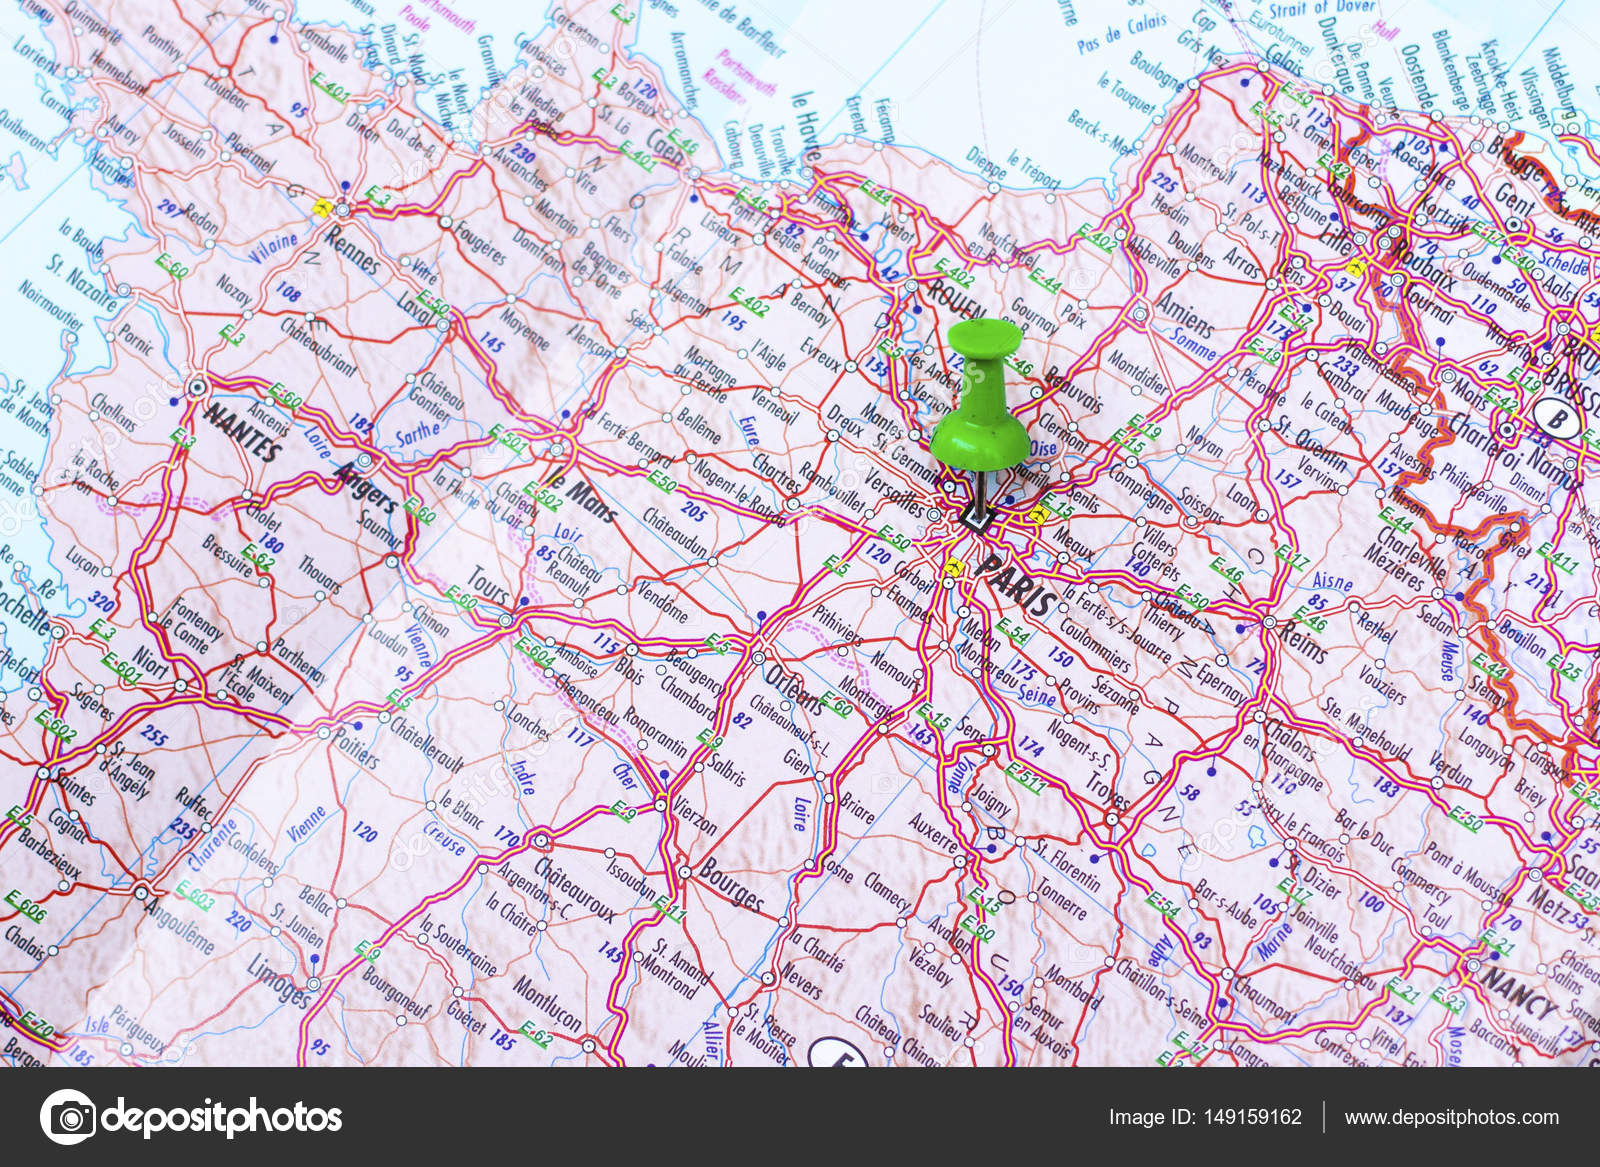 Green push pin pointing at paris stock photo nikodash 149159162 green push pin pointing at paris france photo by nikodash gumiabroncs Image collections